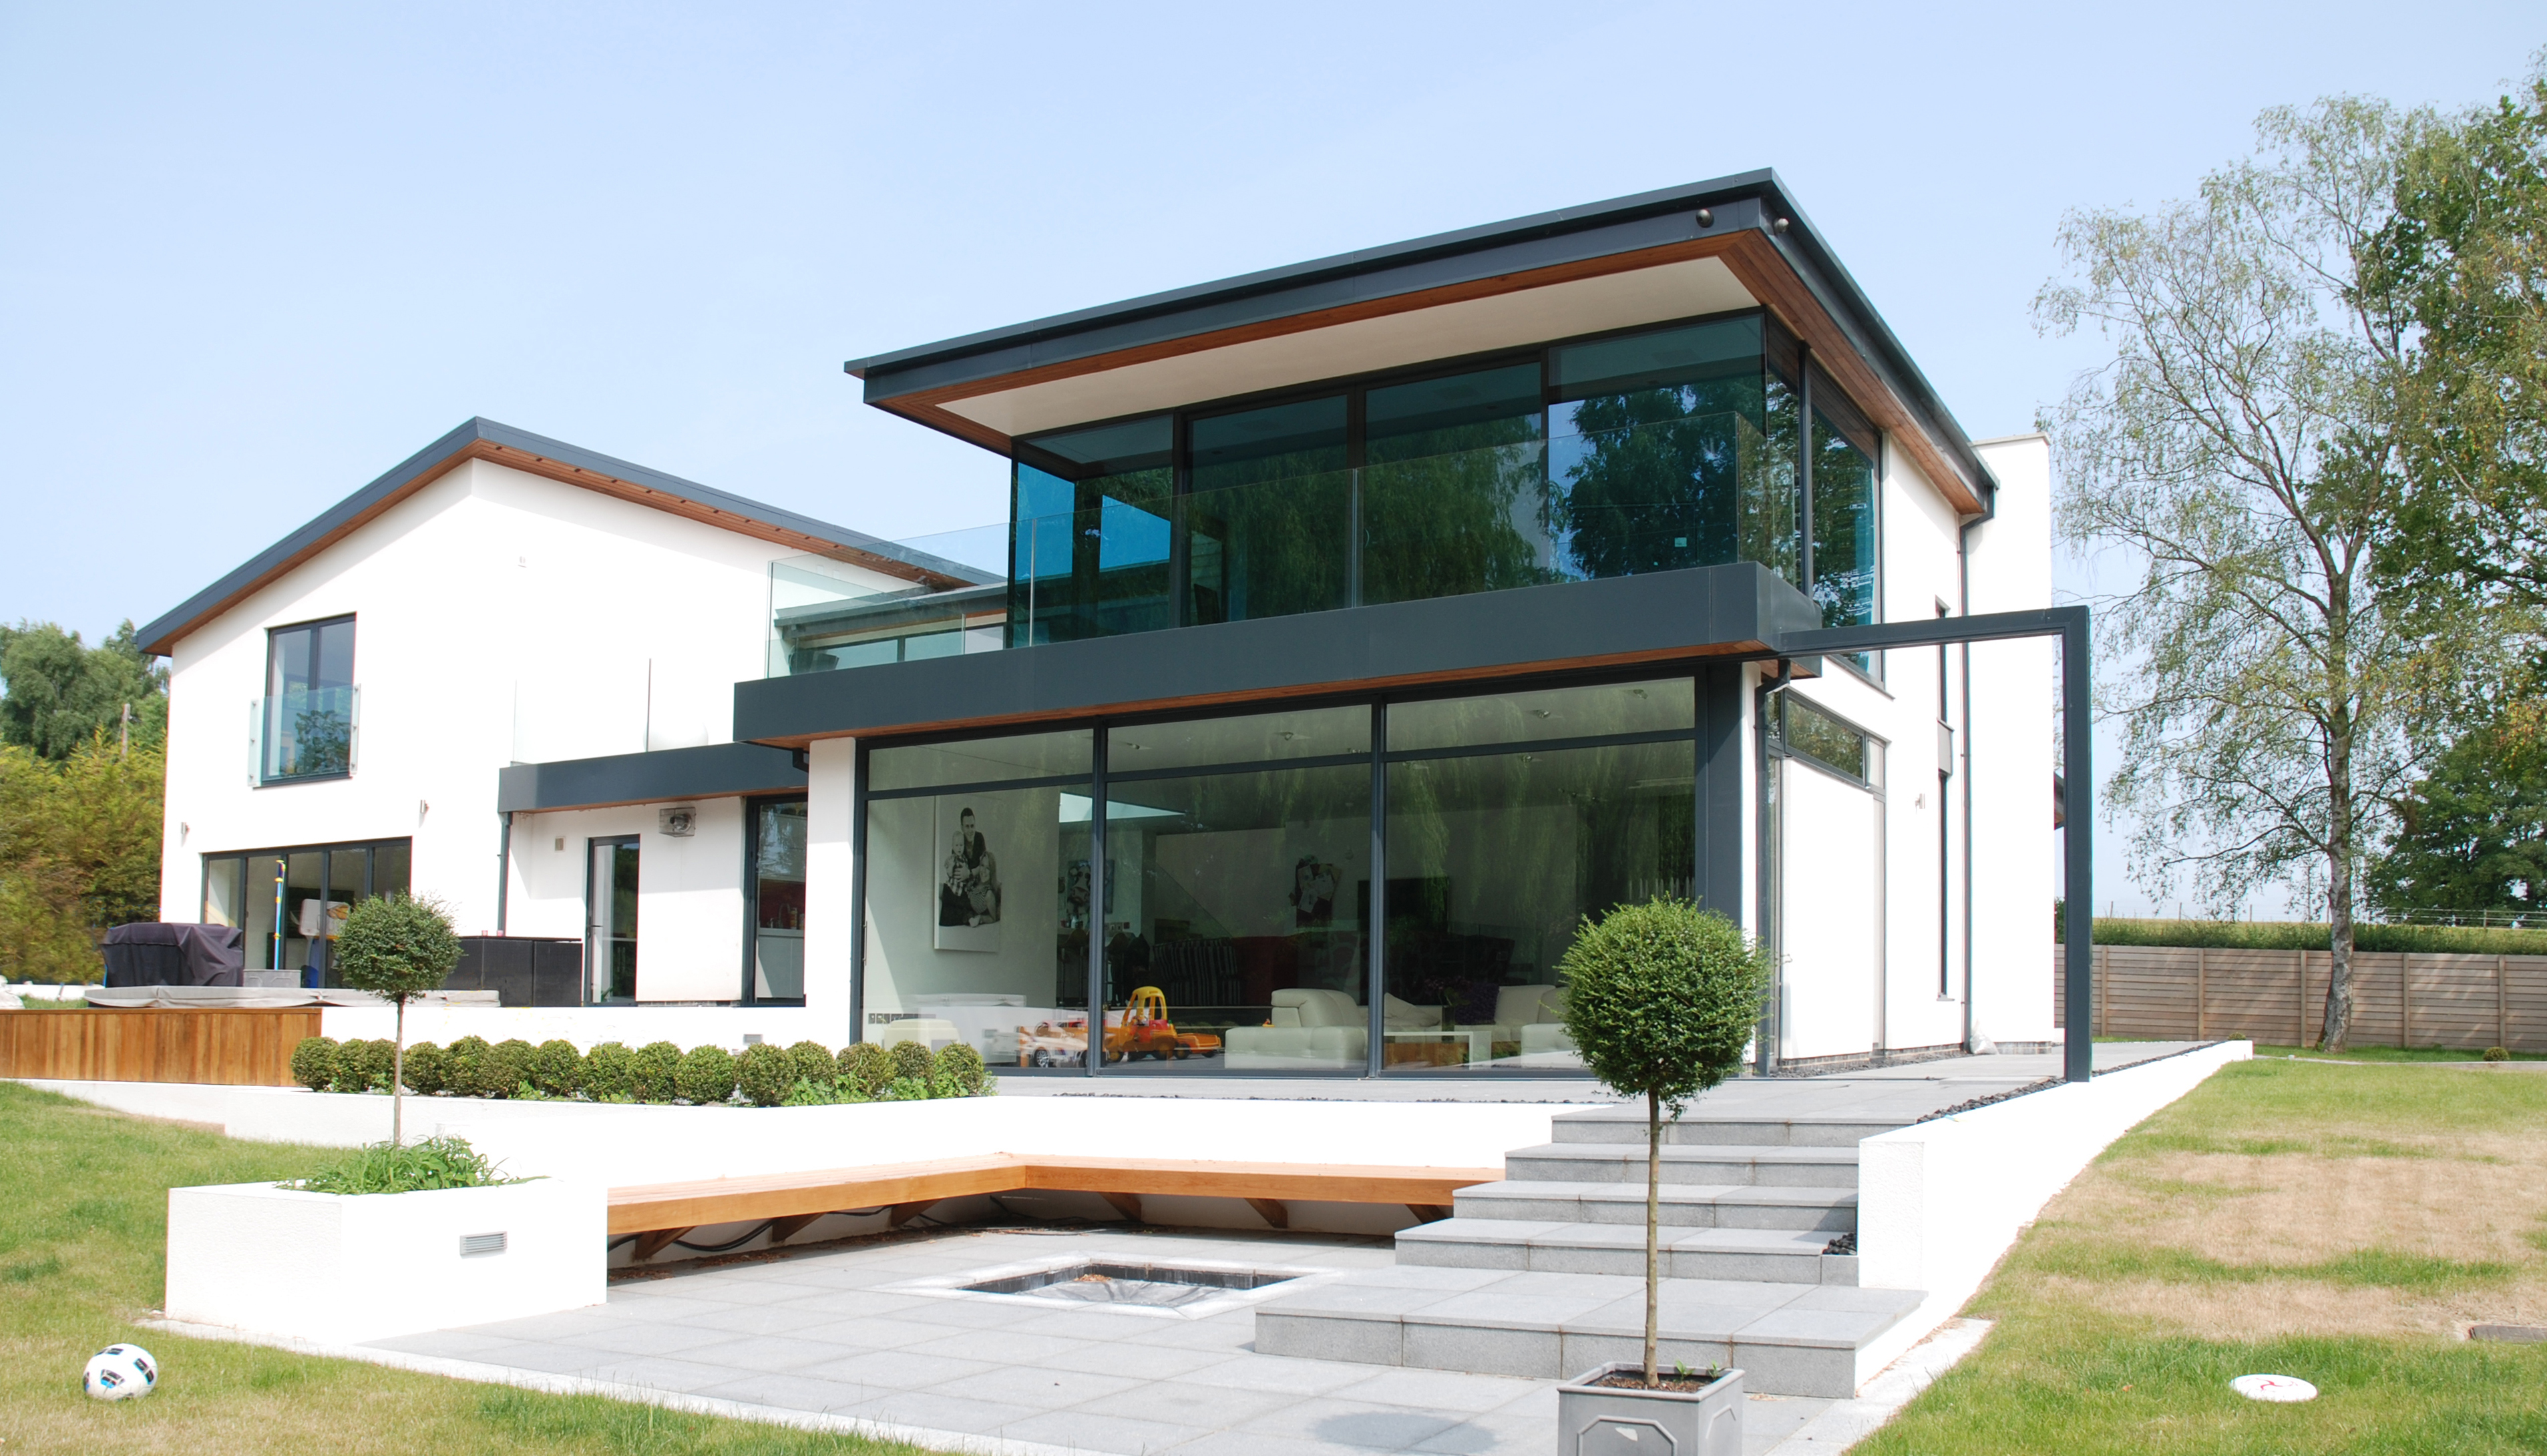 Front. A handsome new home in uncompromising contemporary styling. Spaces internally are large, open and split level and there is a great connection between inside and outside space perfect for summer entertaining. Architects in Oxfordshire, Inspiration Architects.